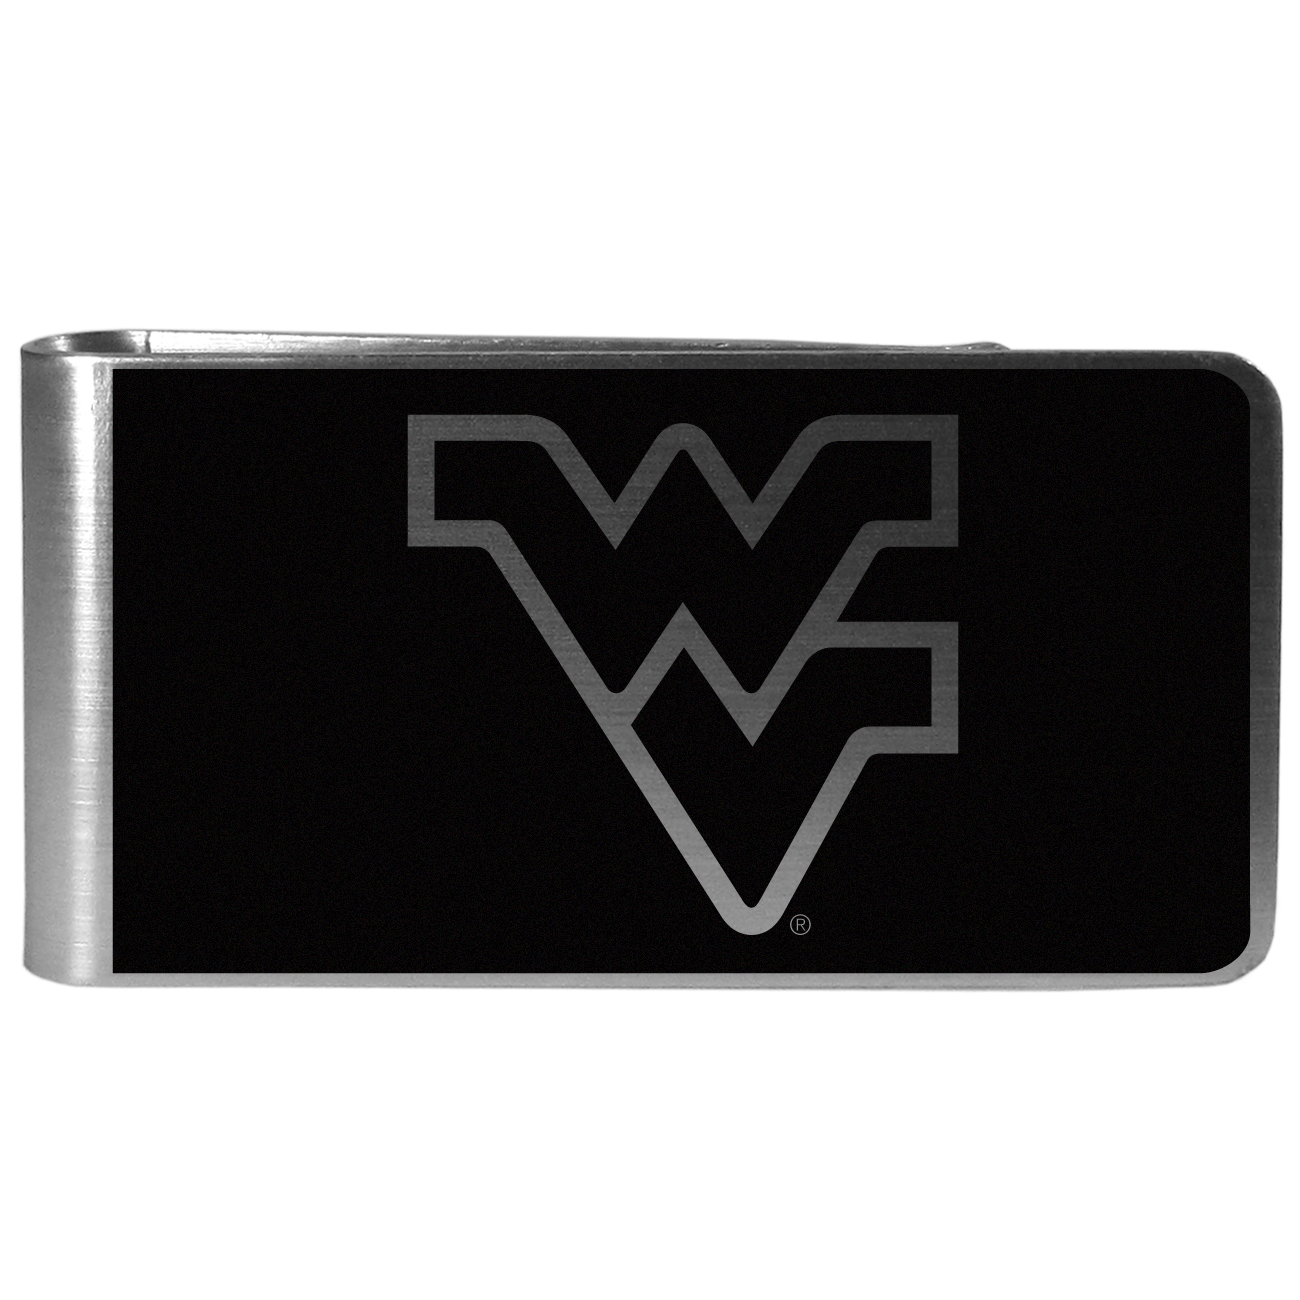 W. Virginia Mountaineers Black and Steel Money Clip - Our monochromatic steel money clips have a classic style and superior quality. The strong, steel clip has a black overlay of the W. Virginia Mountaineers logo over the brushed metal finish creating a stylish men's fashion accessory that would make any fan proud.